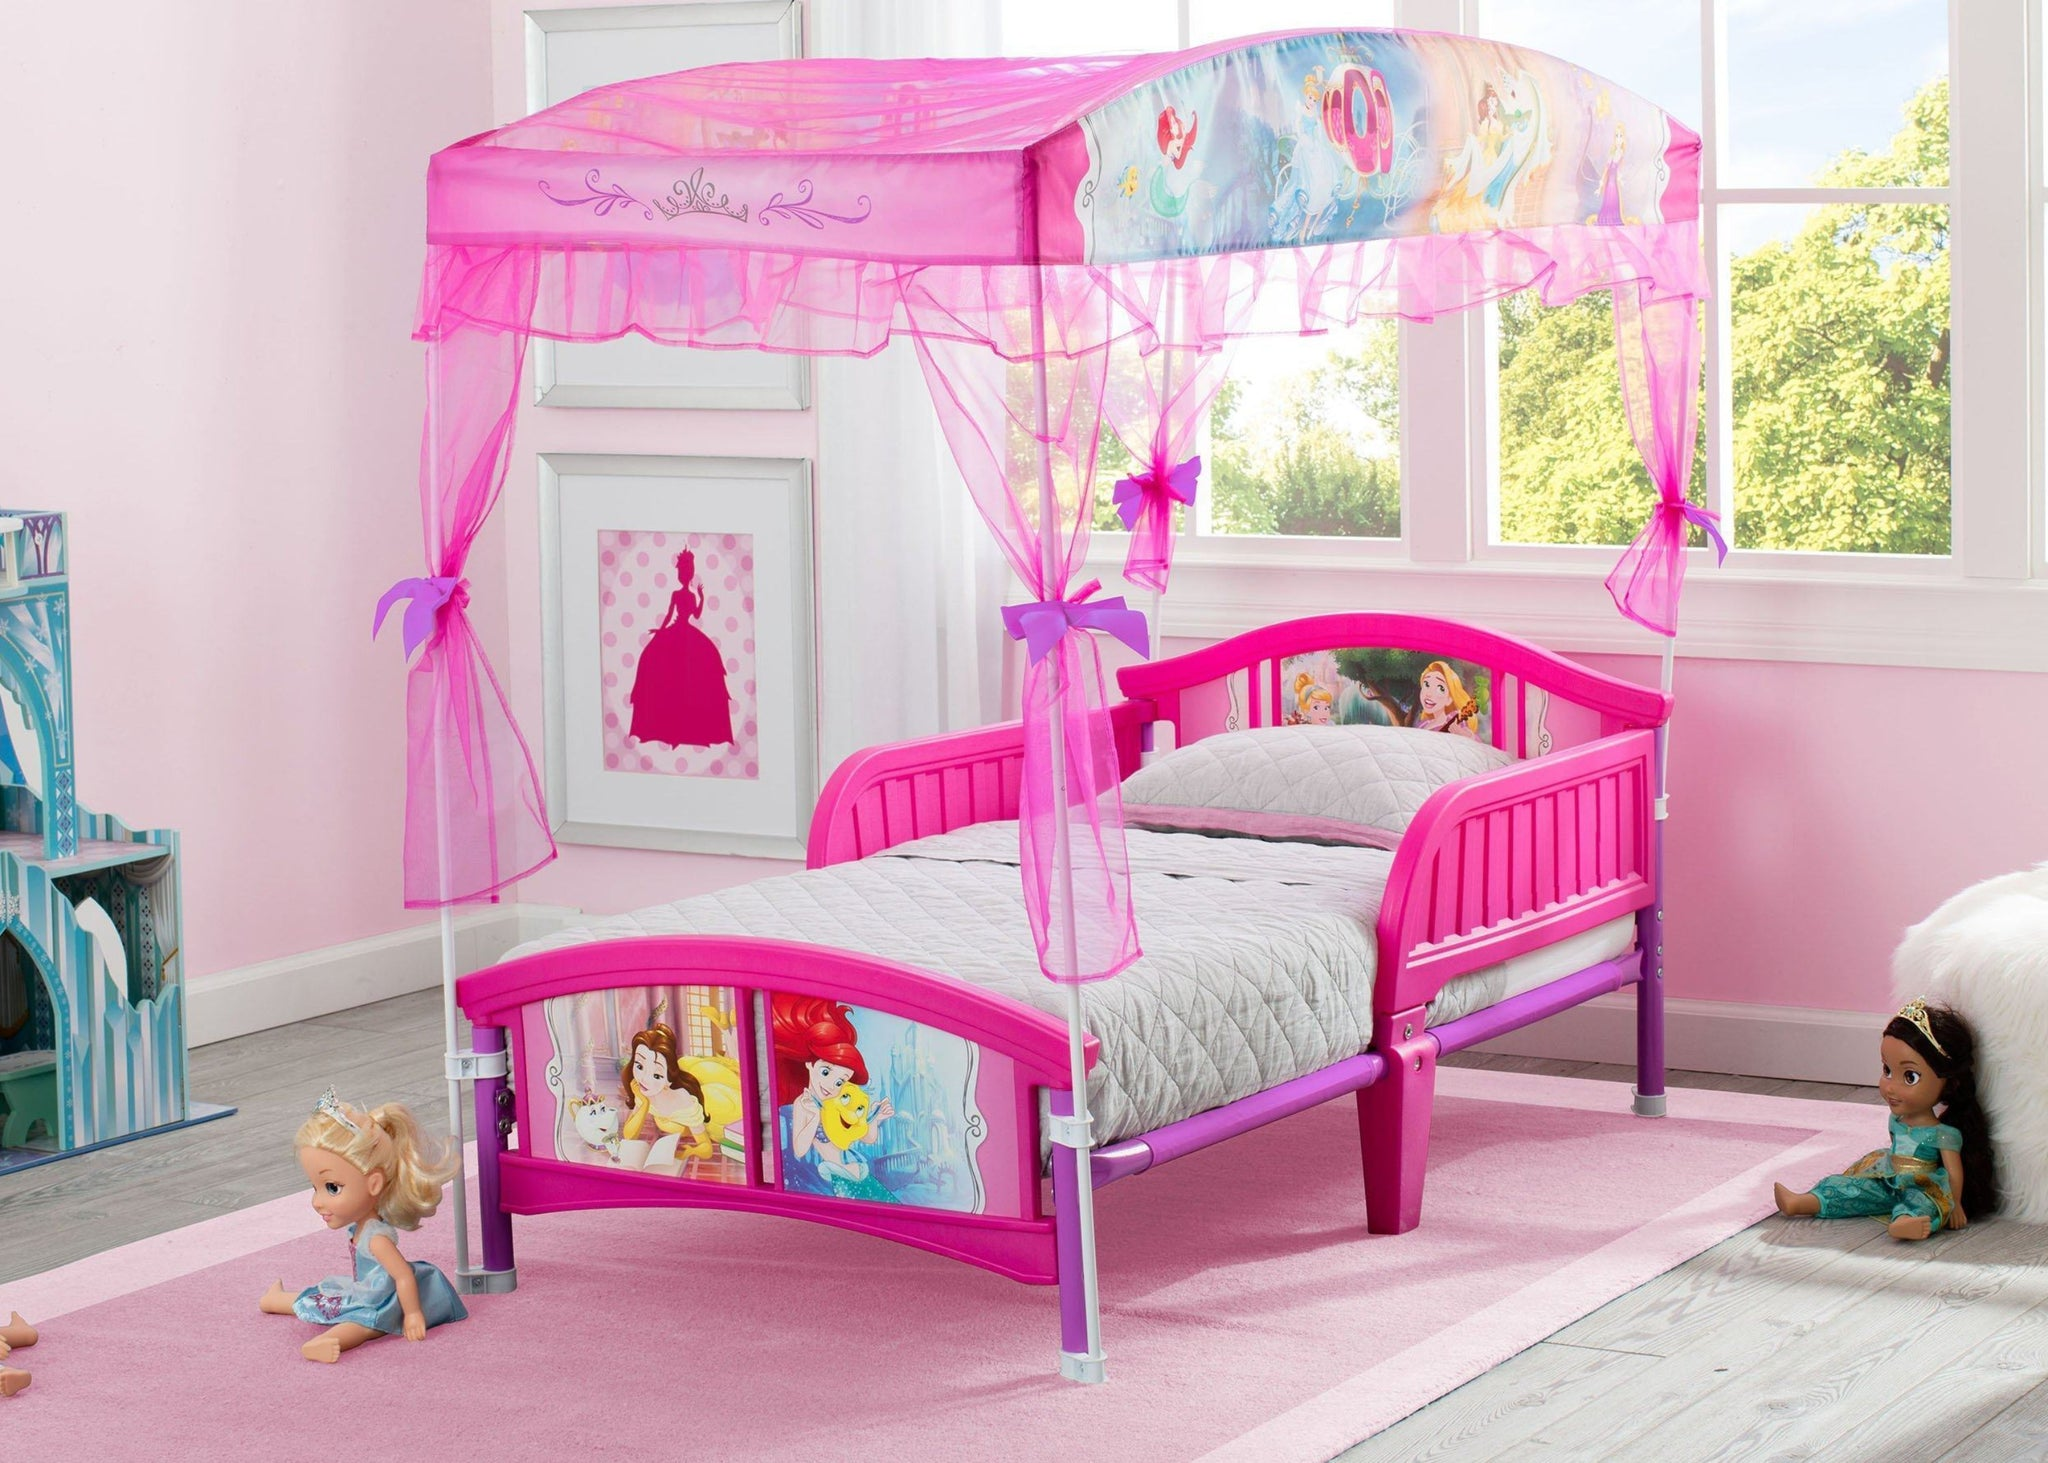 Delta Children Princess Canopy Toddler Bed Room View a1a Disney Princess (1034)